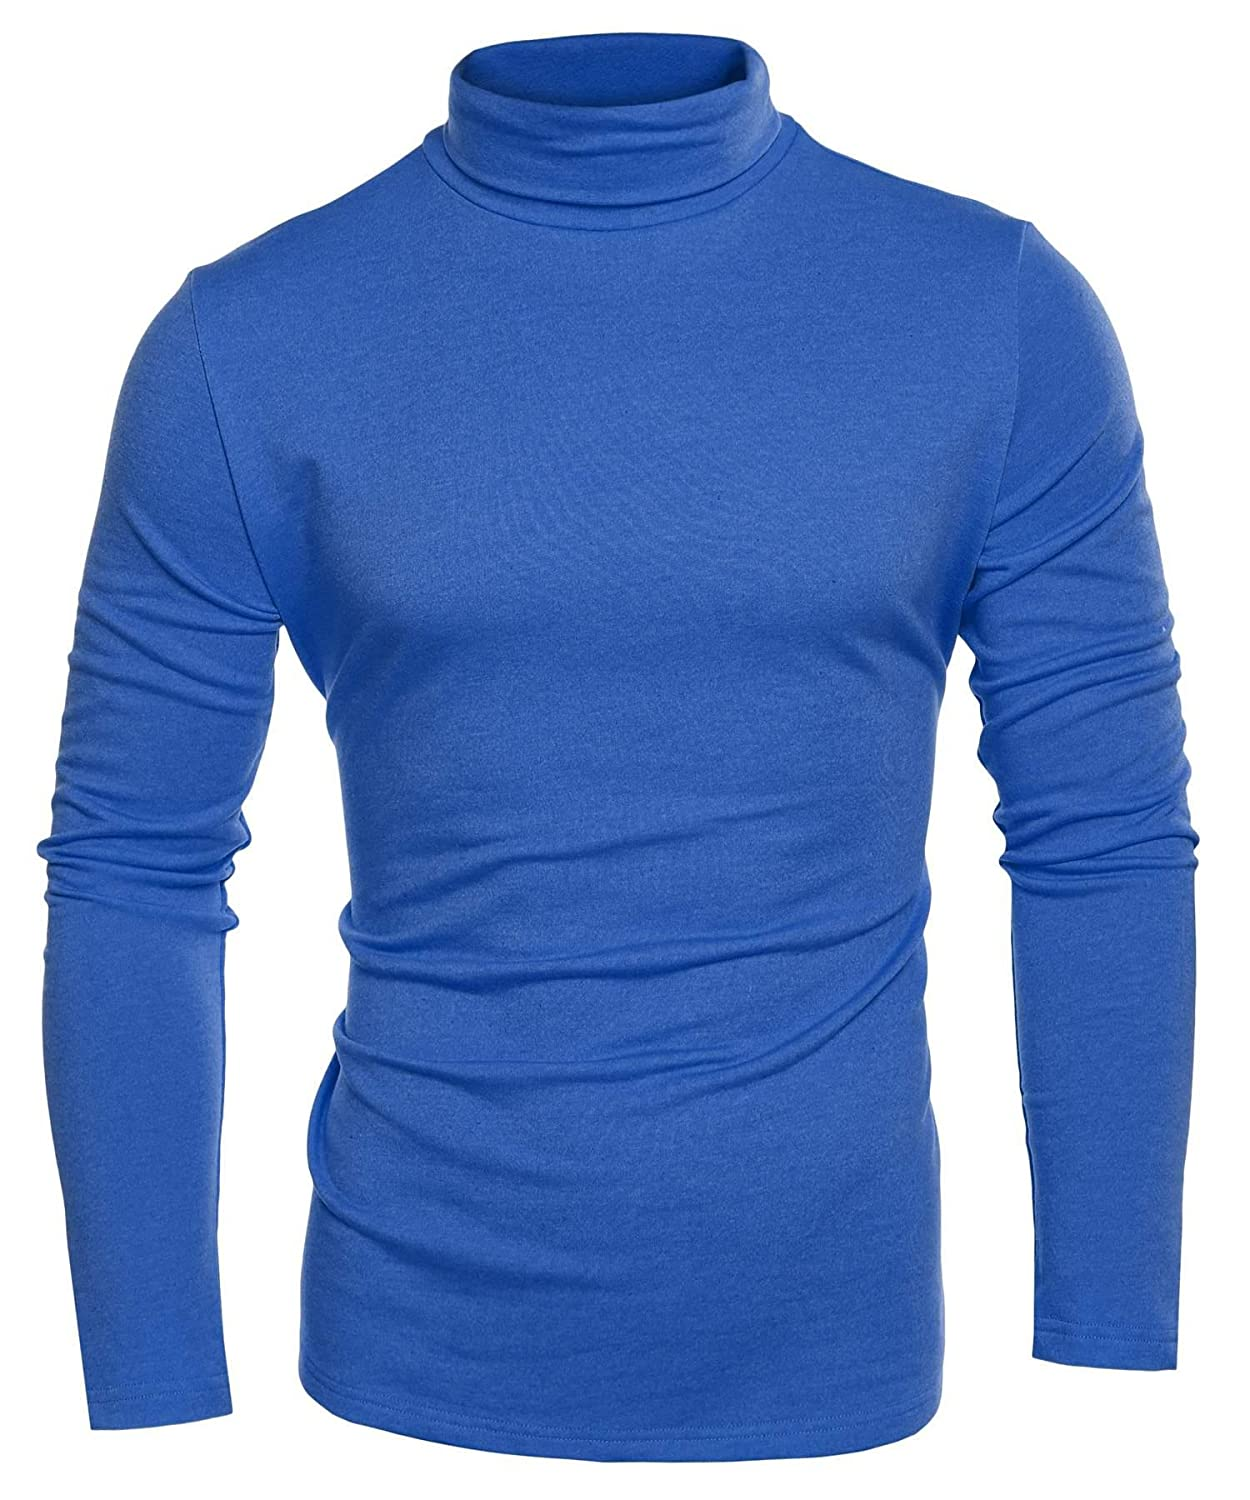 d56a95dbe21 Top 10 wholesale Blue Turtleneck Shirt - Chinabrands.com